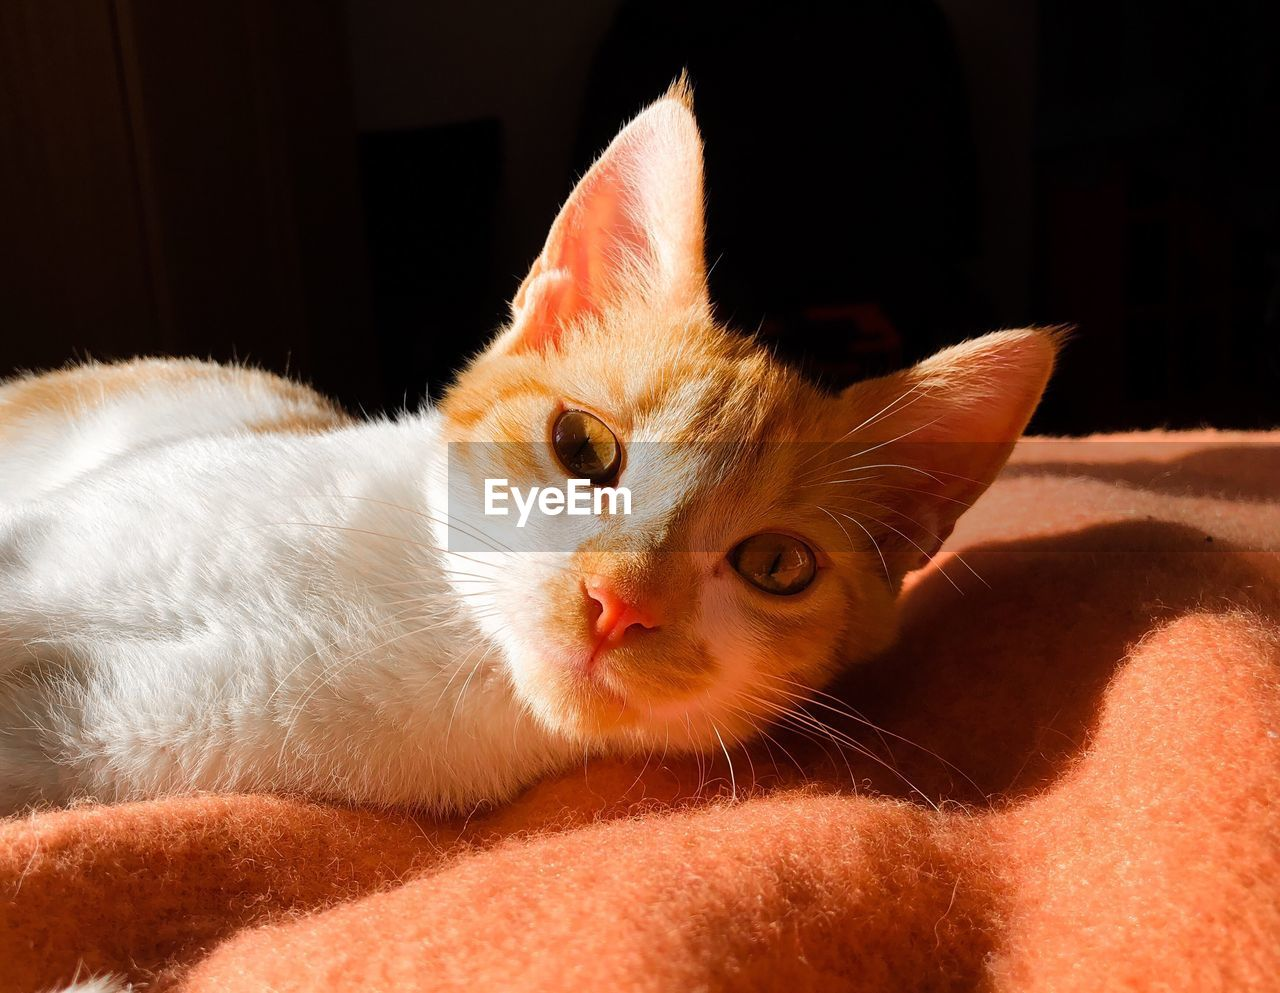 pets, domestic, domestic animals, mammal, domestic cat, cat, animal themes, animal, feline, one animal, vertebrate, close-up, no people, whisker, portrait, indoors, looking at camera, relaxation, lying down, bed, animal head, ginger cat, animal eye